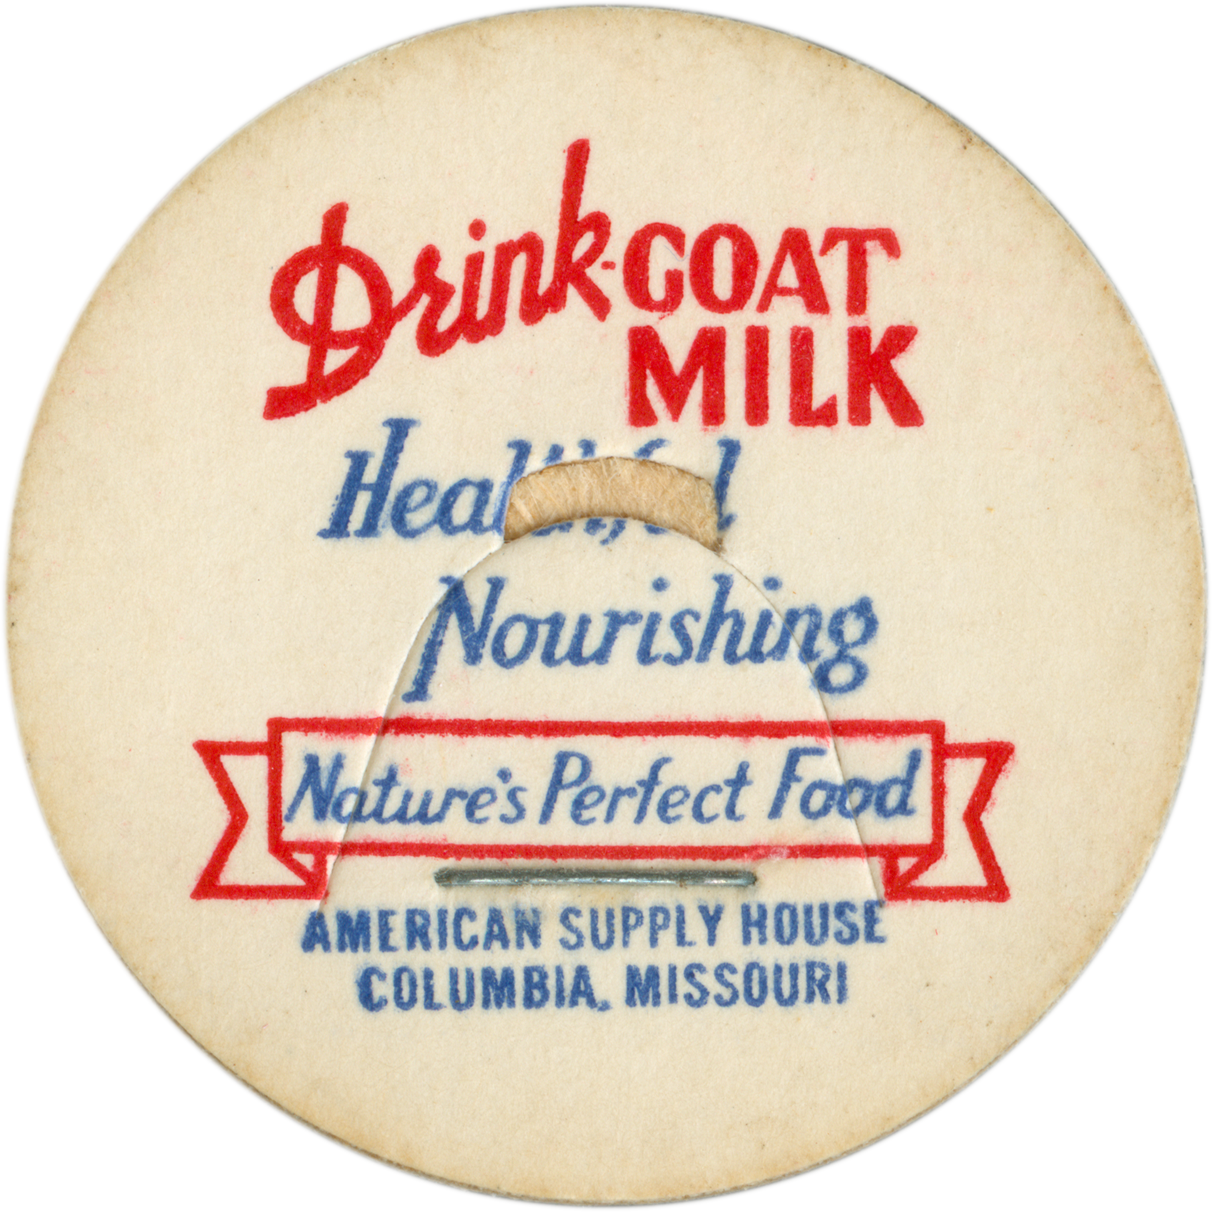 VernacularCircle__0000s_0042_Drink-Goat-Milk---Healthful,-Nourishing---Nature's-Perfect-Food.png